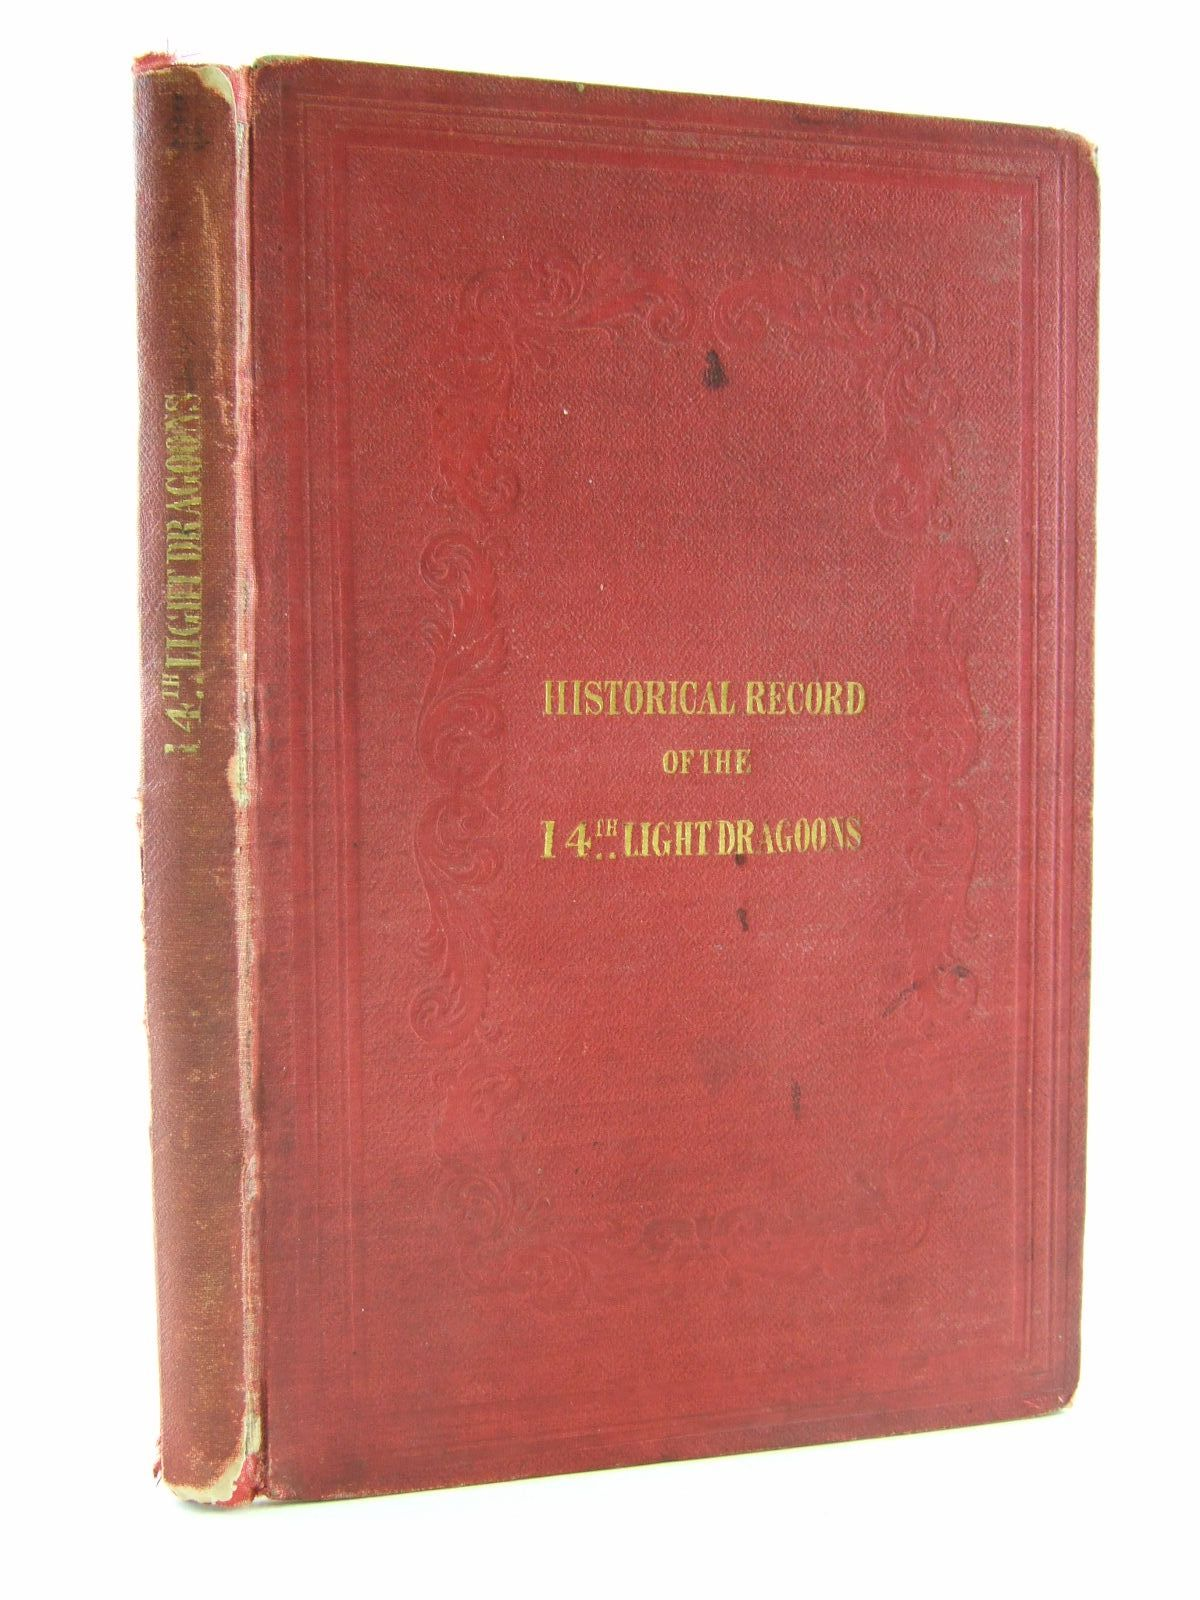 Photo of HISTORICAL RECORD OF THE FOURTEENTH OR THE KING'S REGIMENT OF LIGHT DRAGOONS written by Cannon, Richard published by Parker, Furnivall & Parker (STOCK CODE: 1706931)  for sale by Stella & Rose's Books